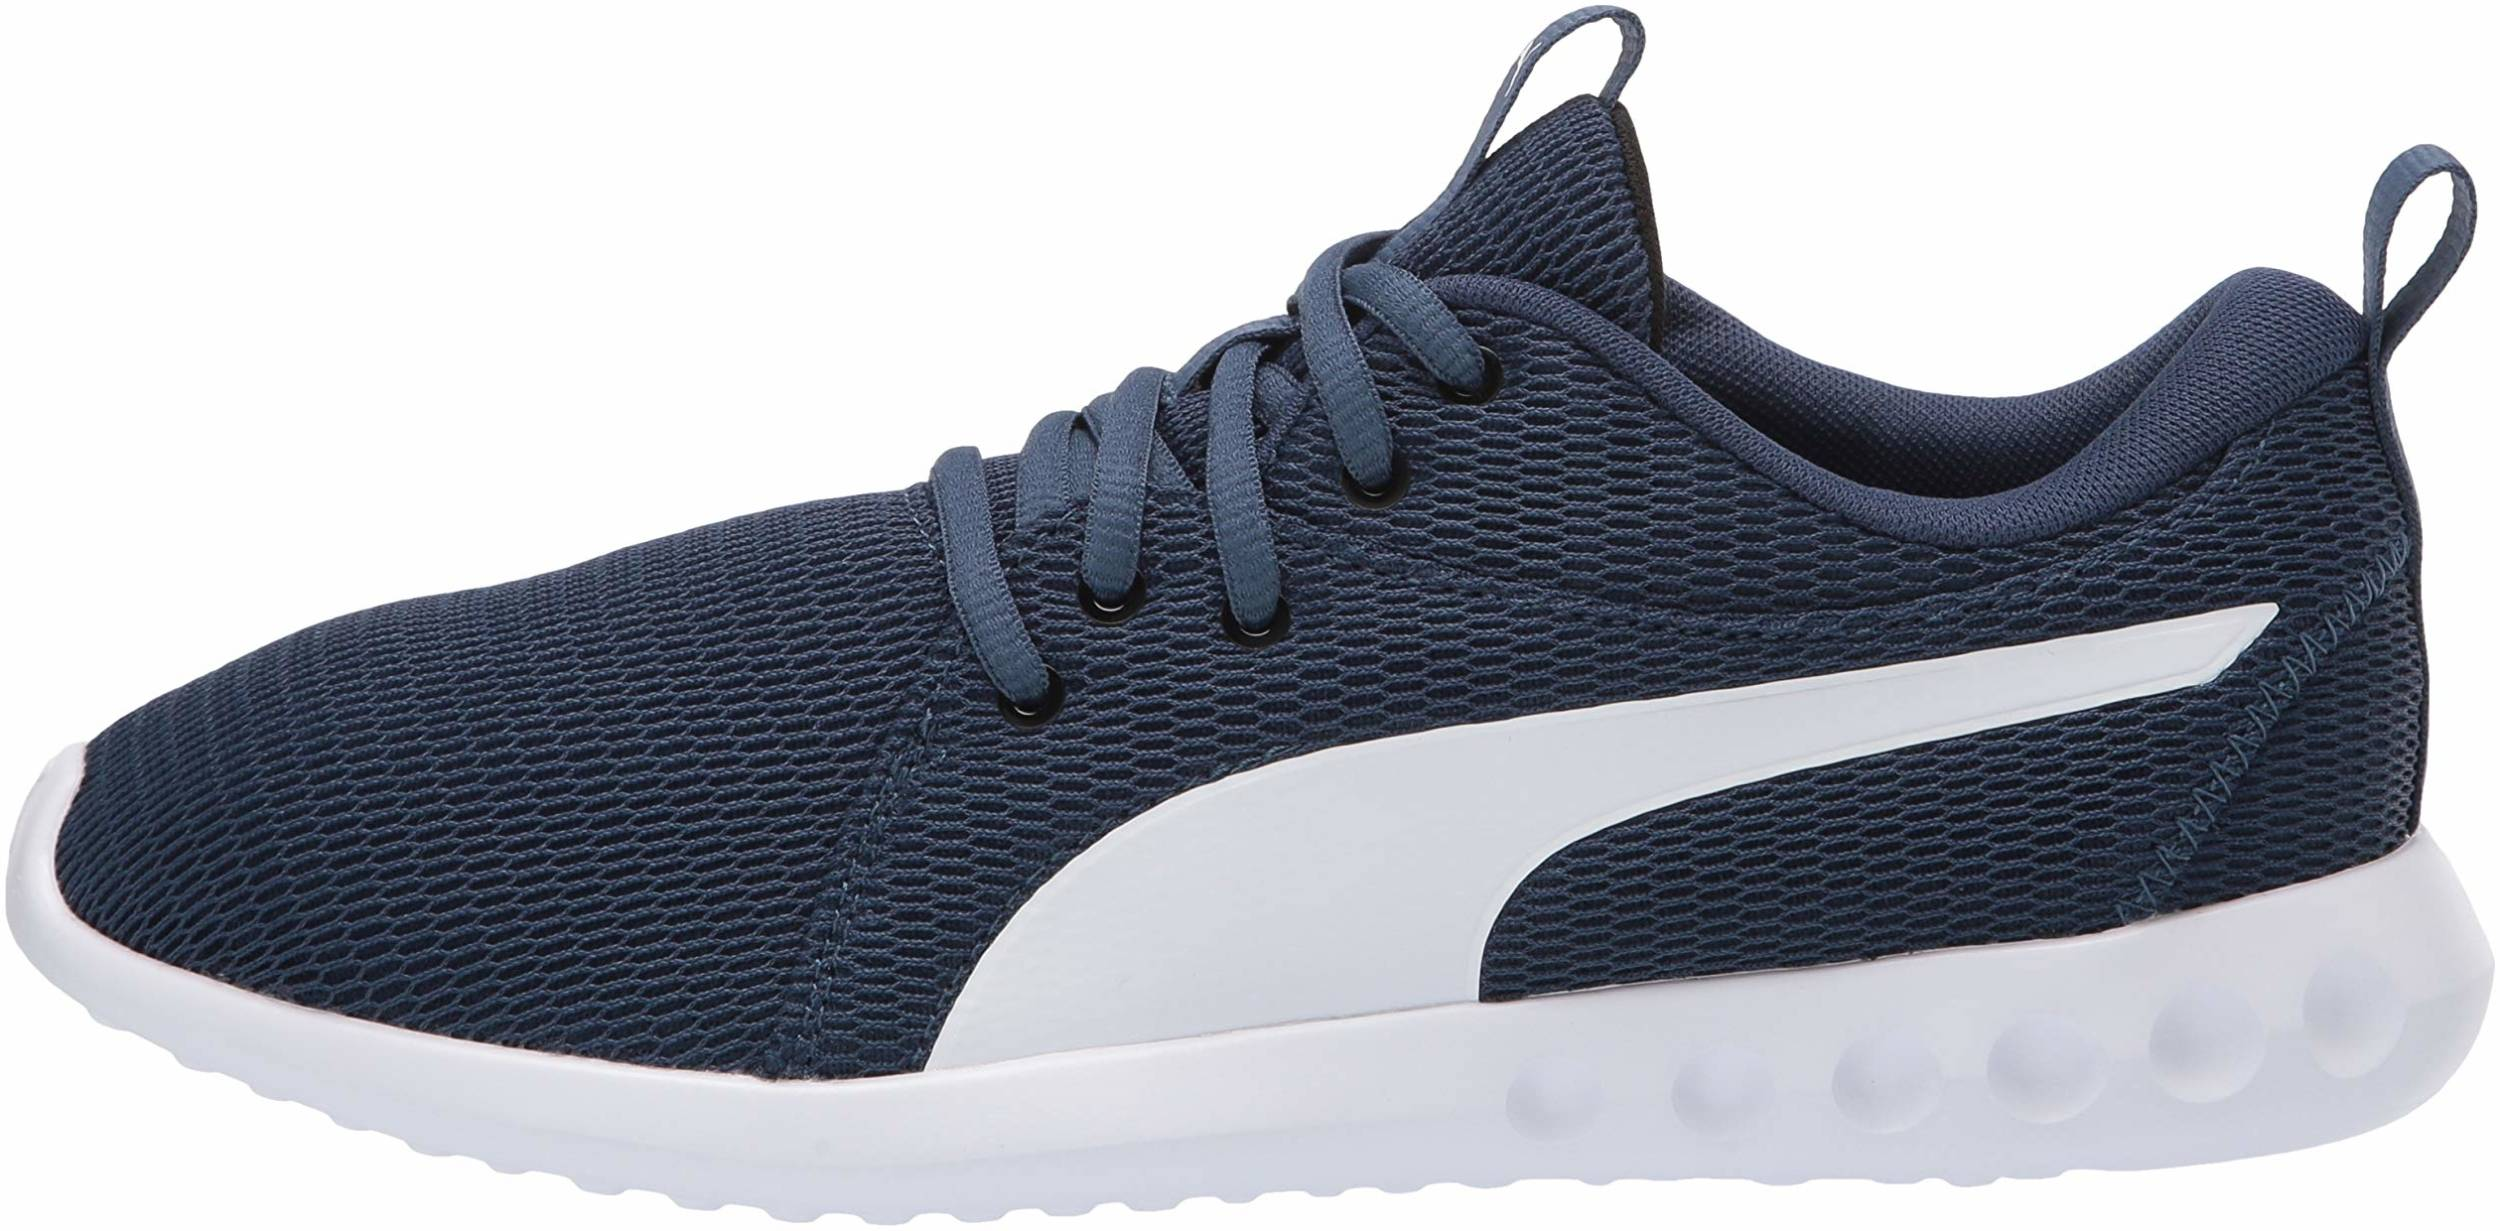 Only £37 + Review of Puma Carson 2